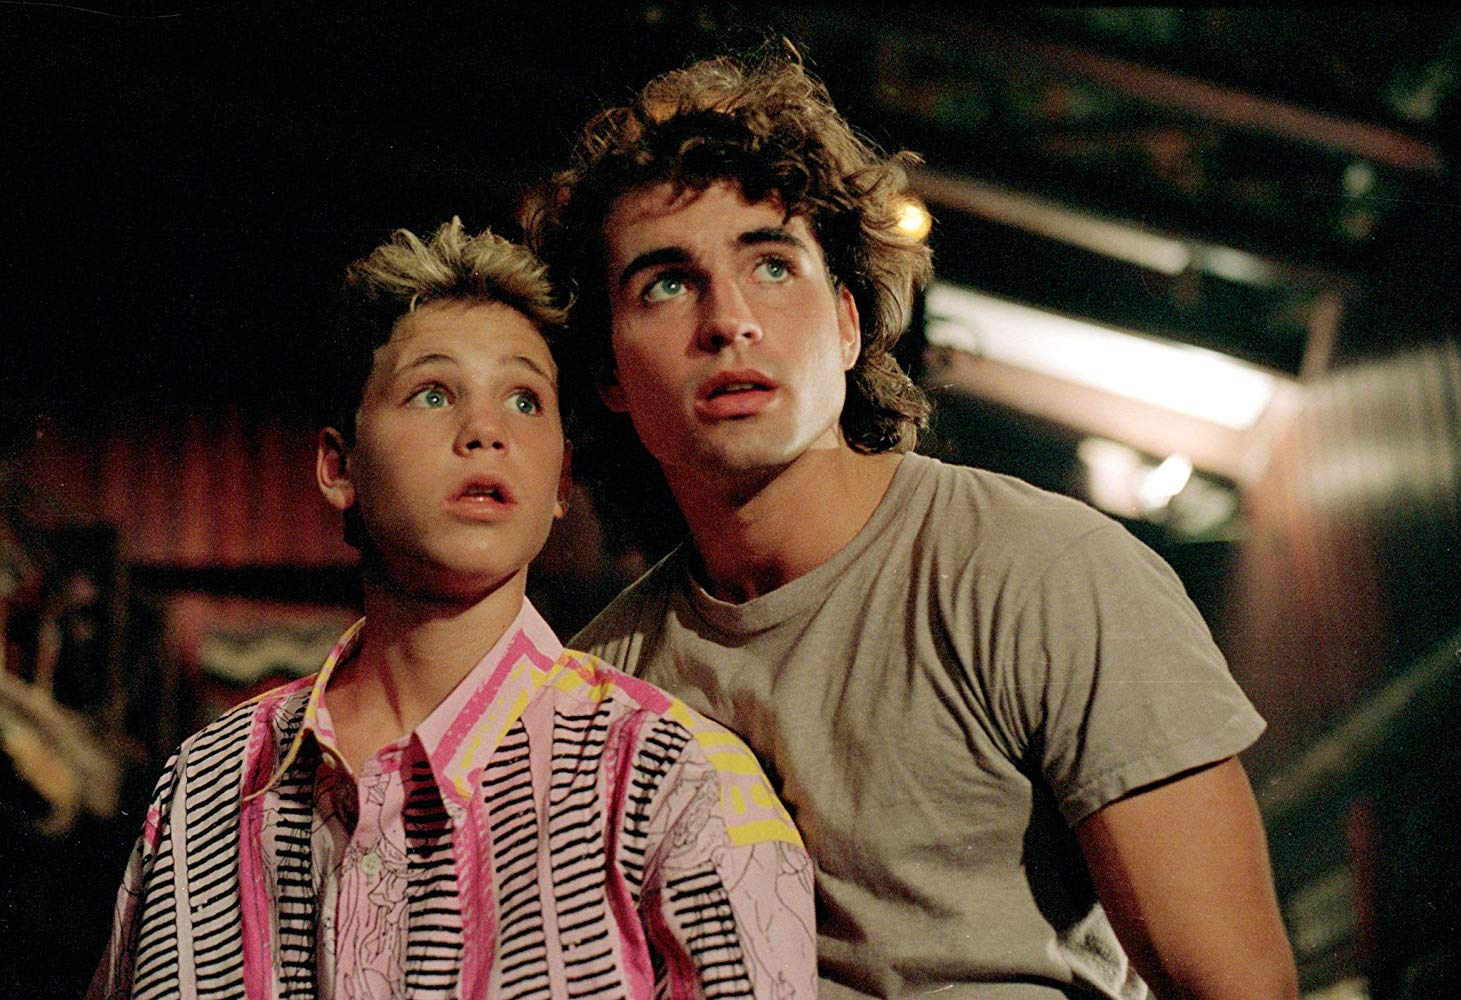 Corey Haim, Jason Patric in The Lost Boys (1987)